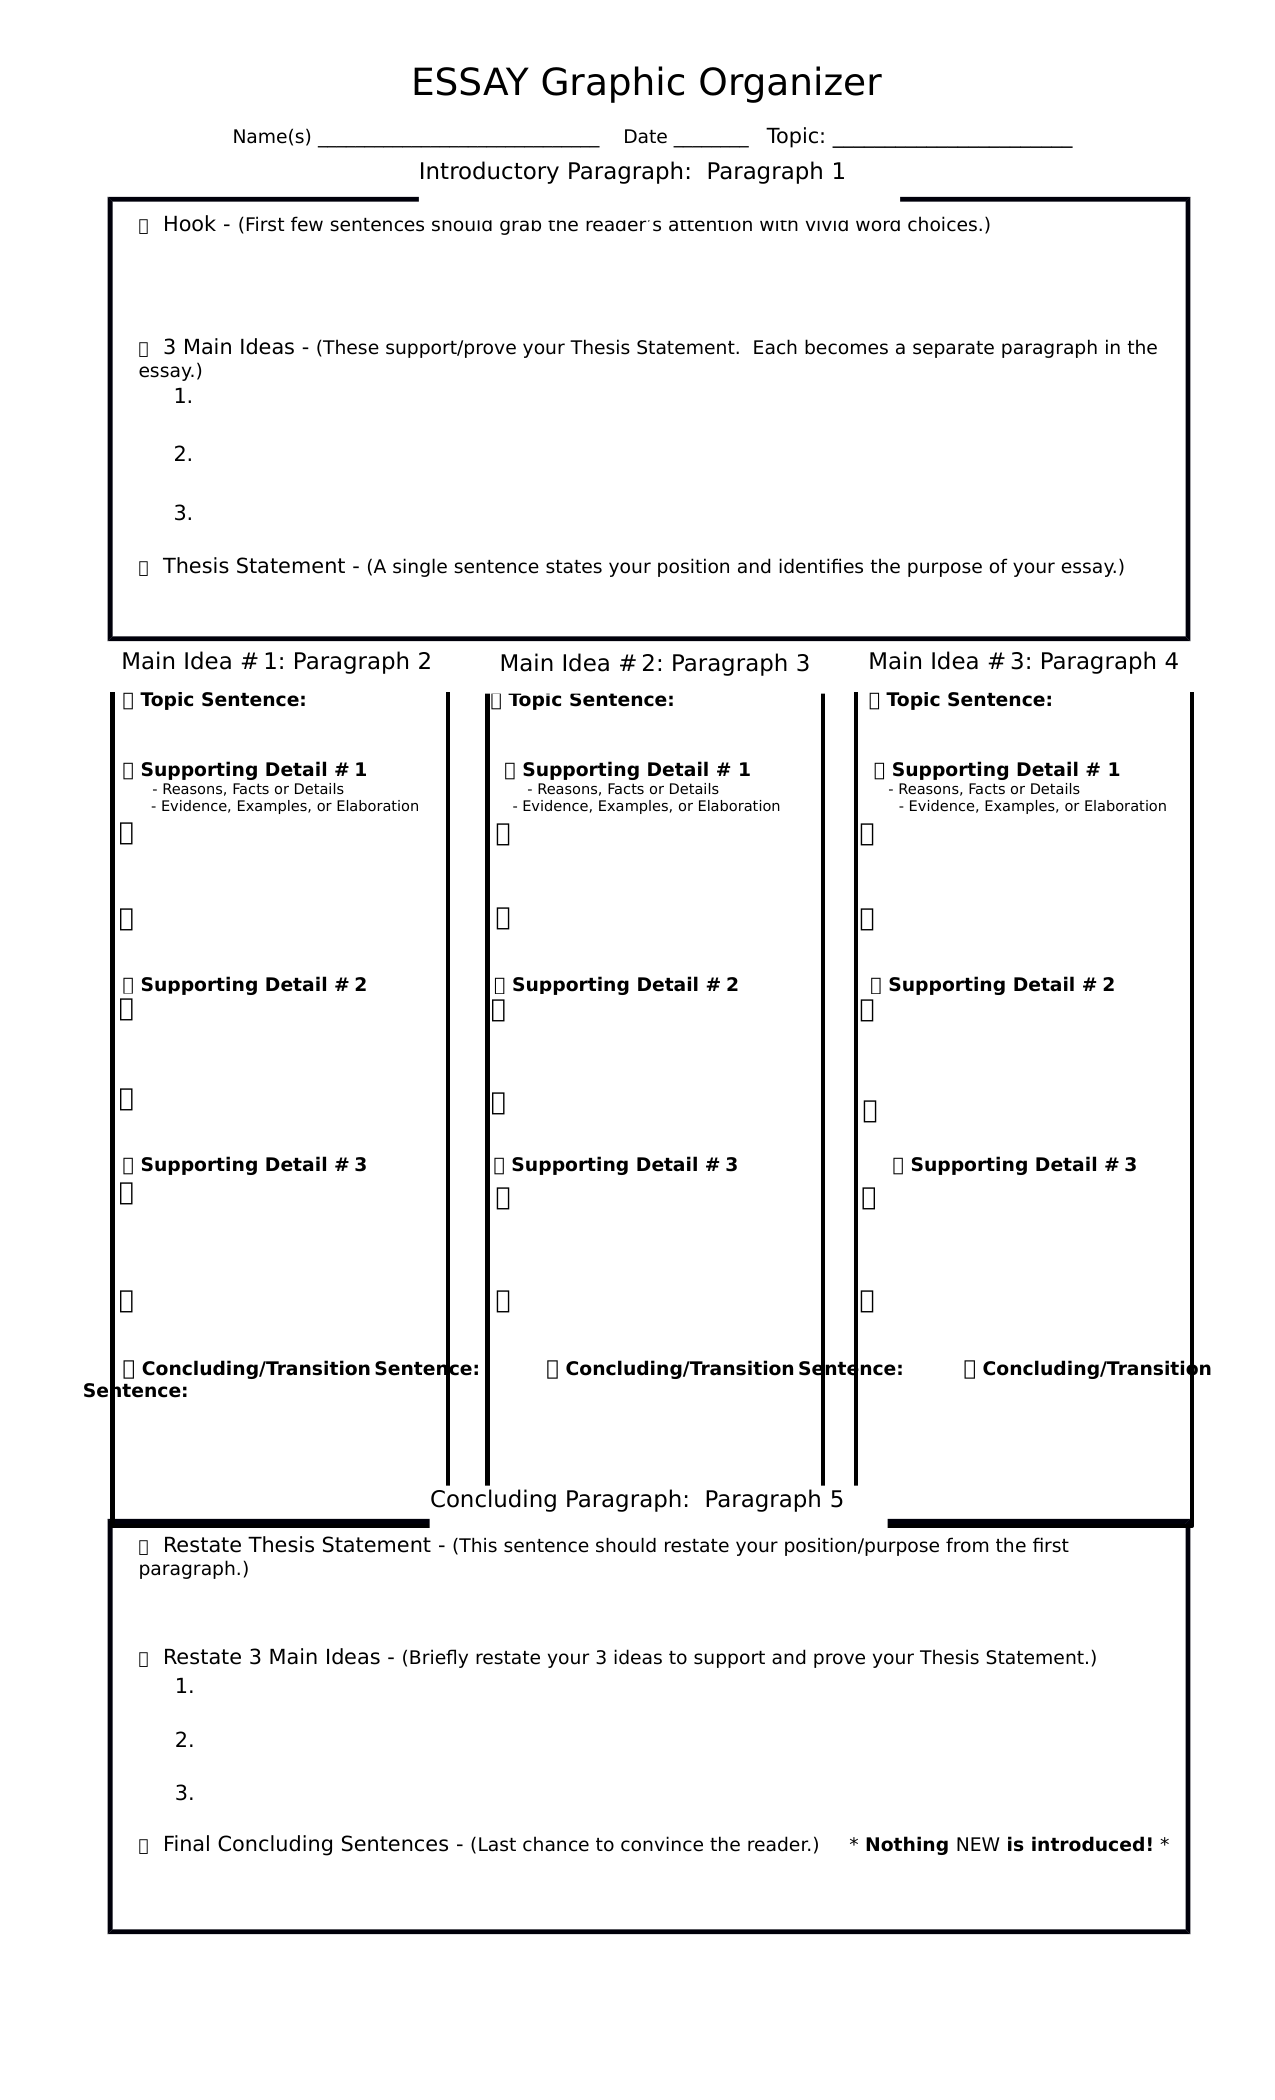 eb61e051848 Essay Graphic Organizer by tinakt · Ninja Plans